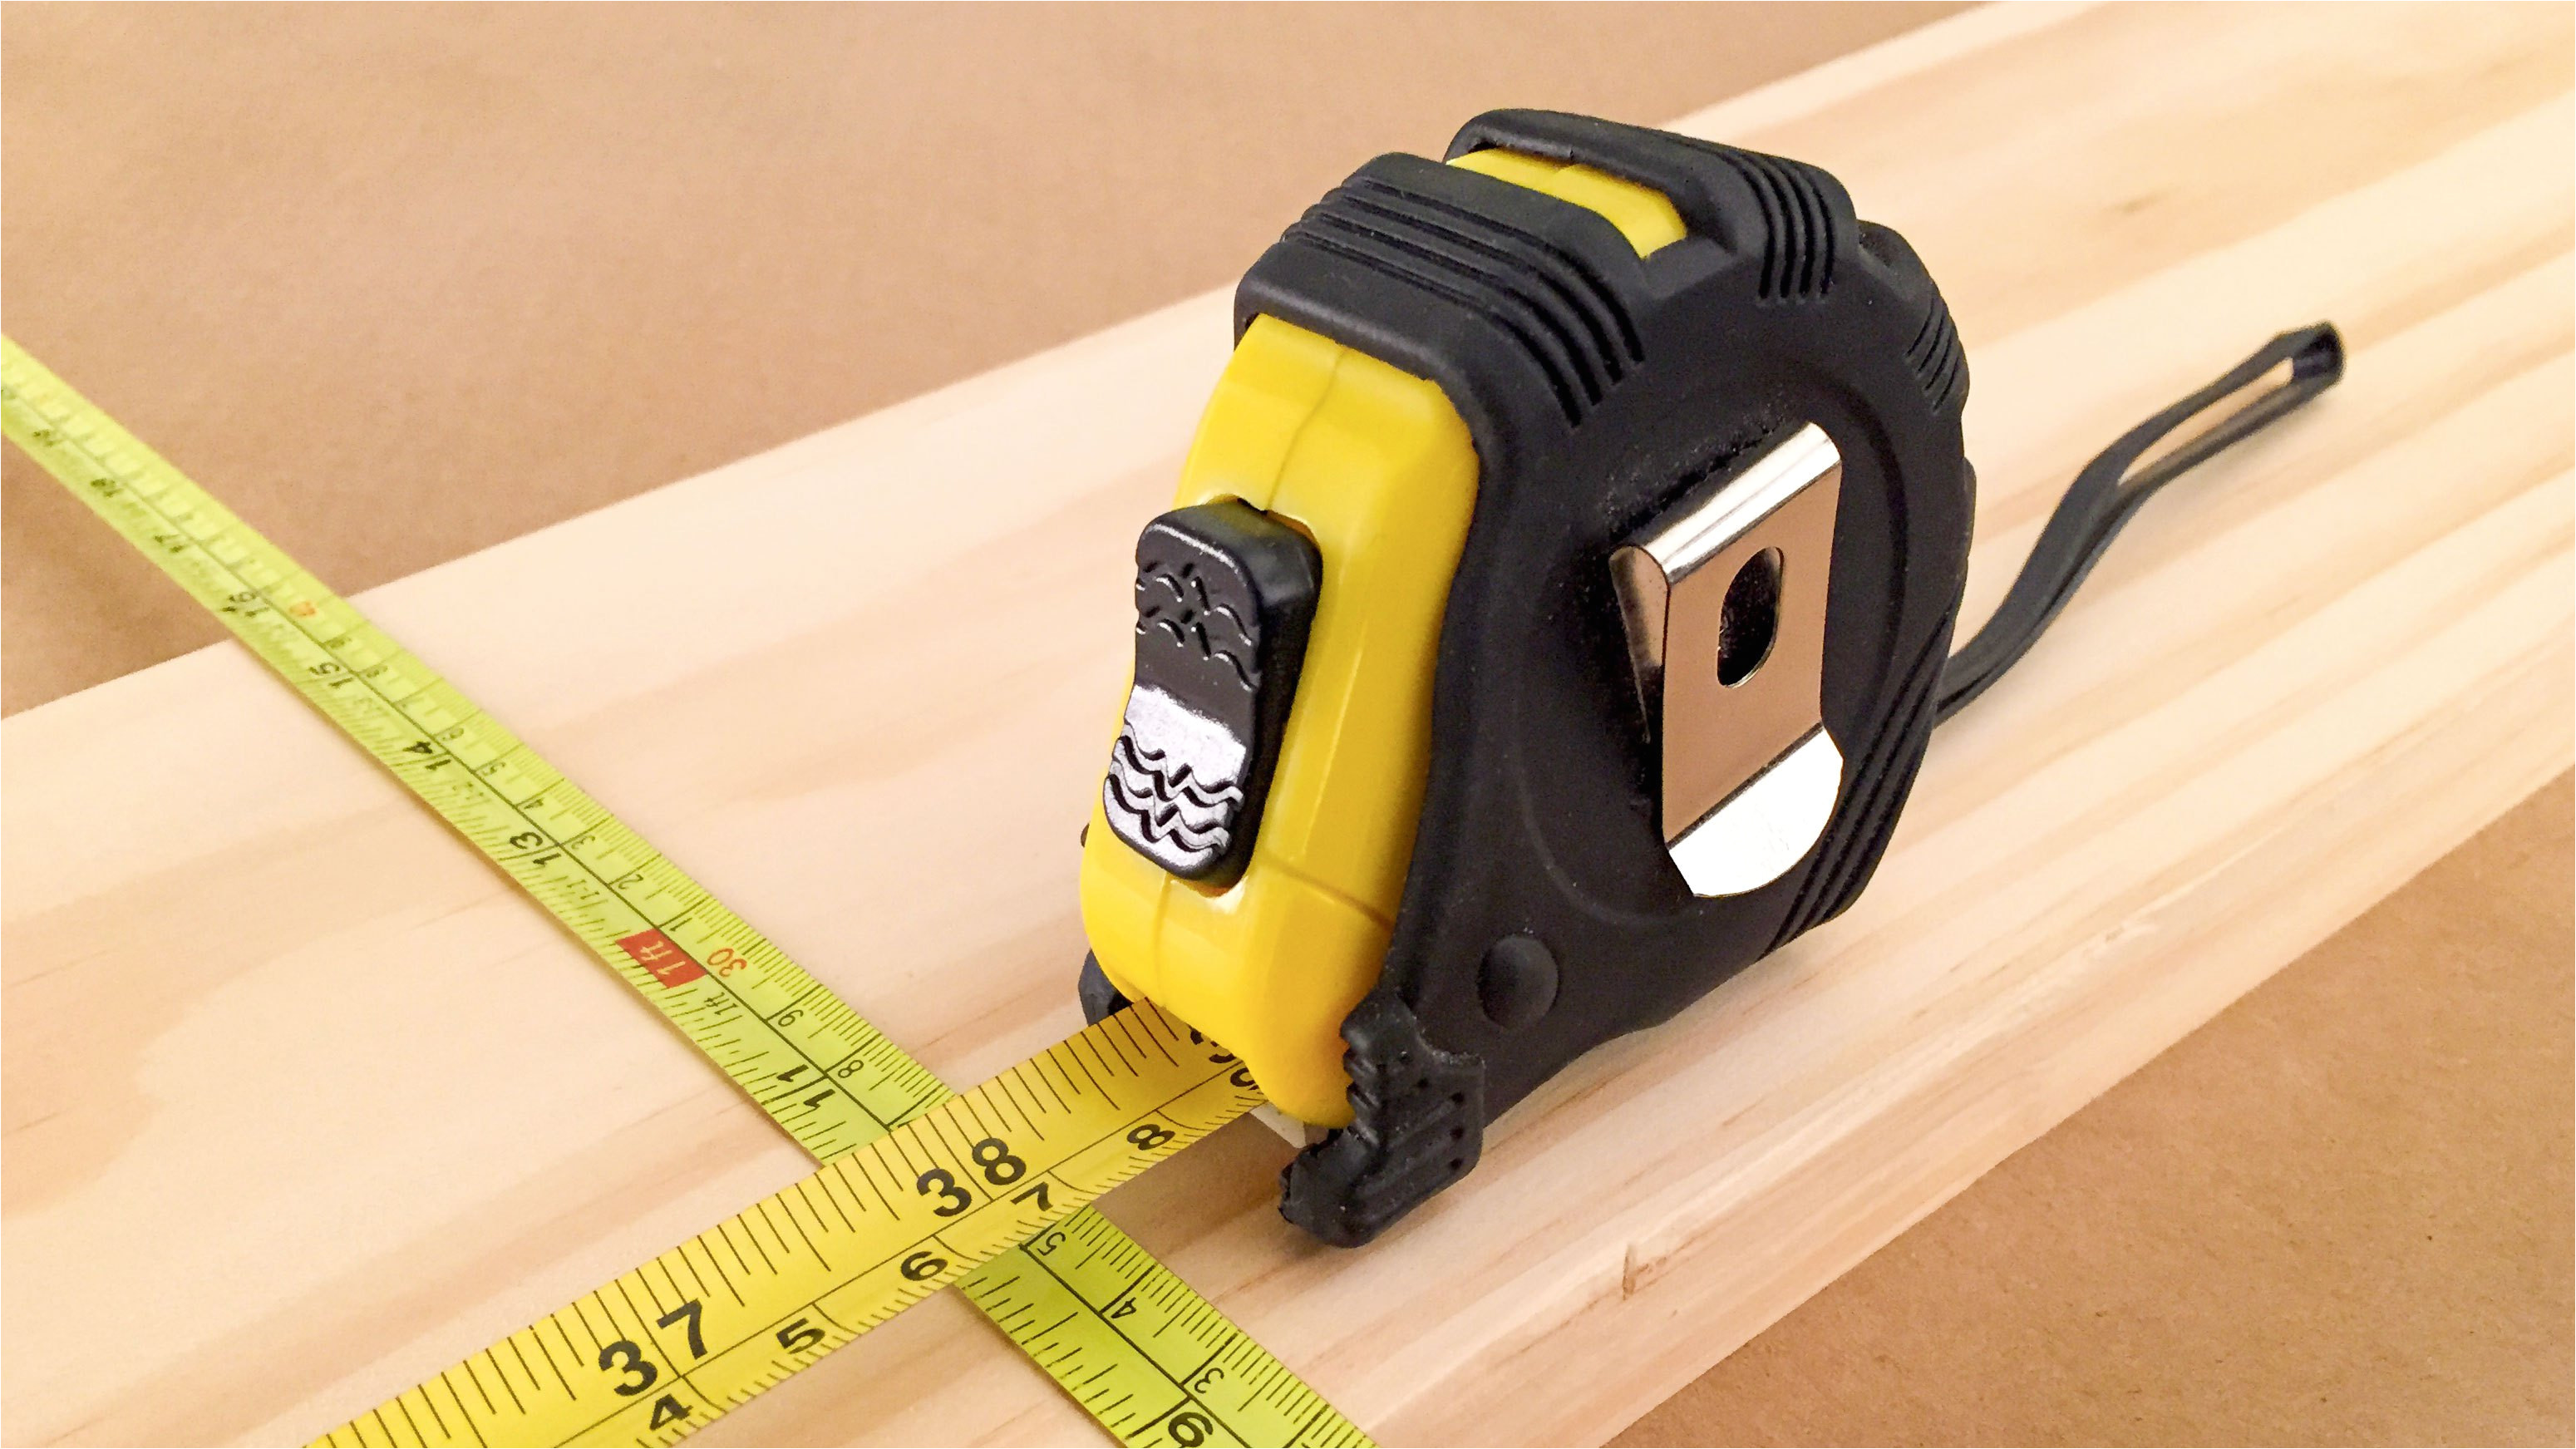 everyday measuring of person scale objects tape measure tape measure